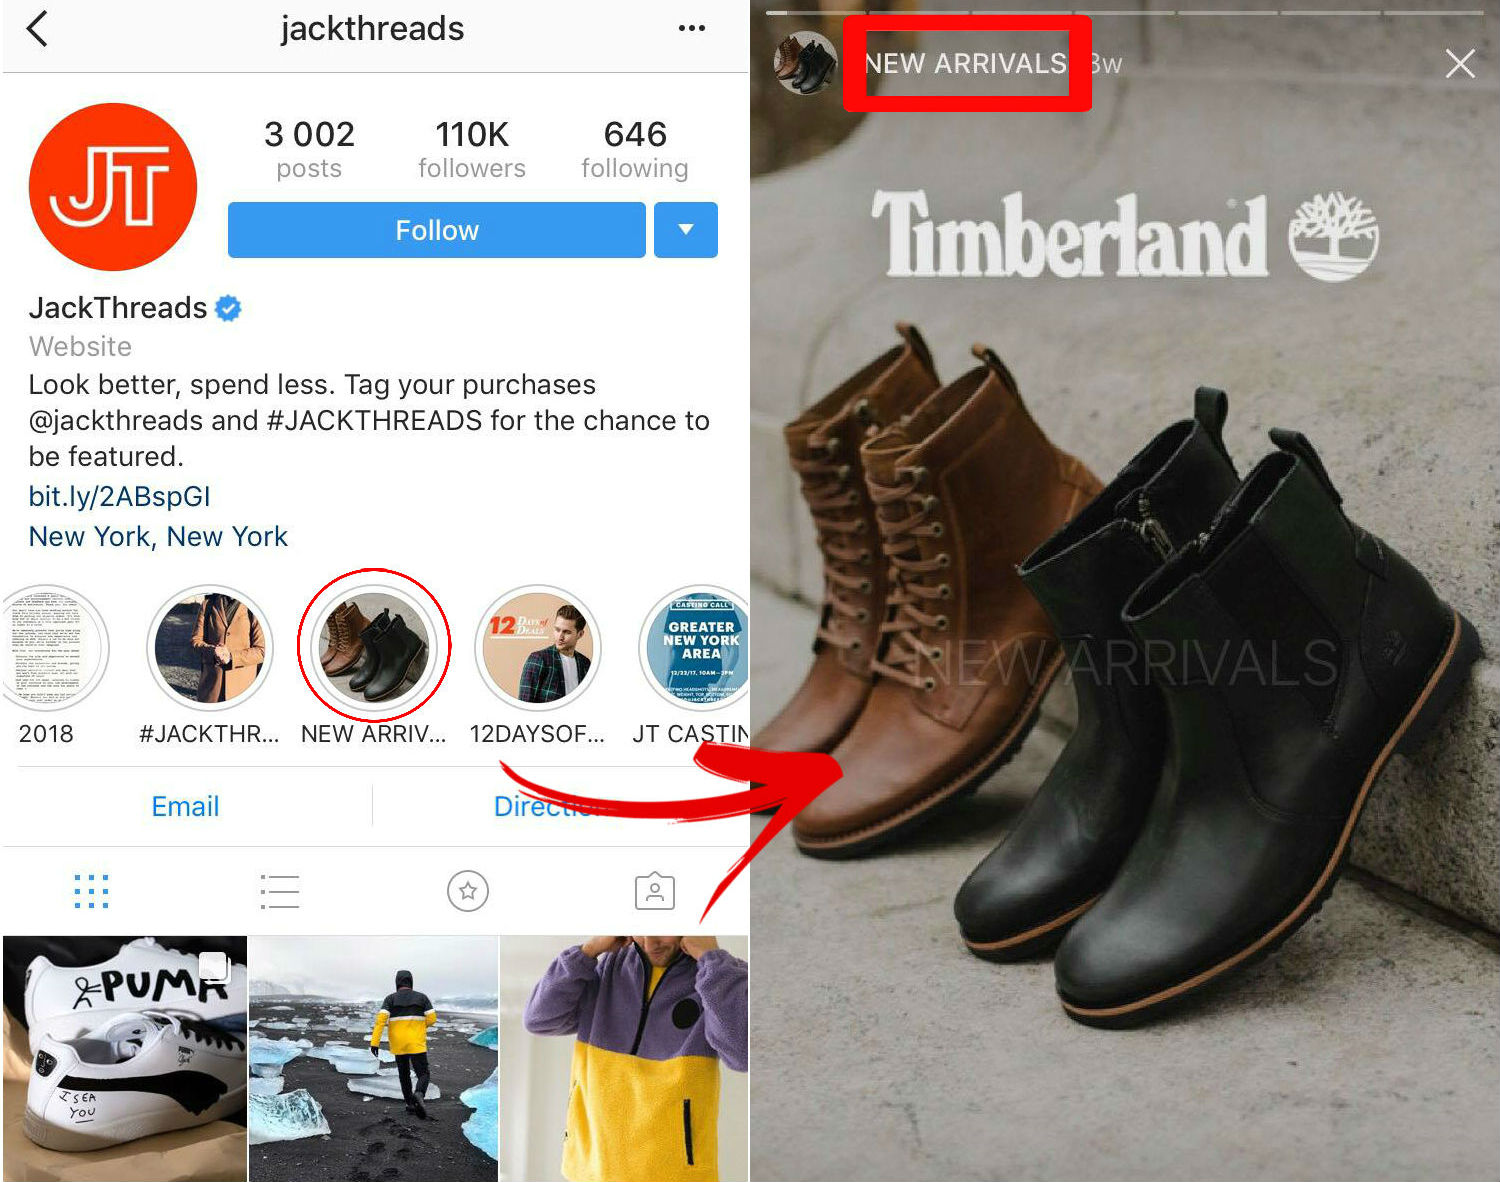 jackthreads instagram insta stories ecommerce